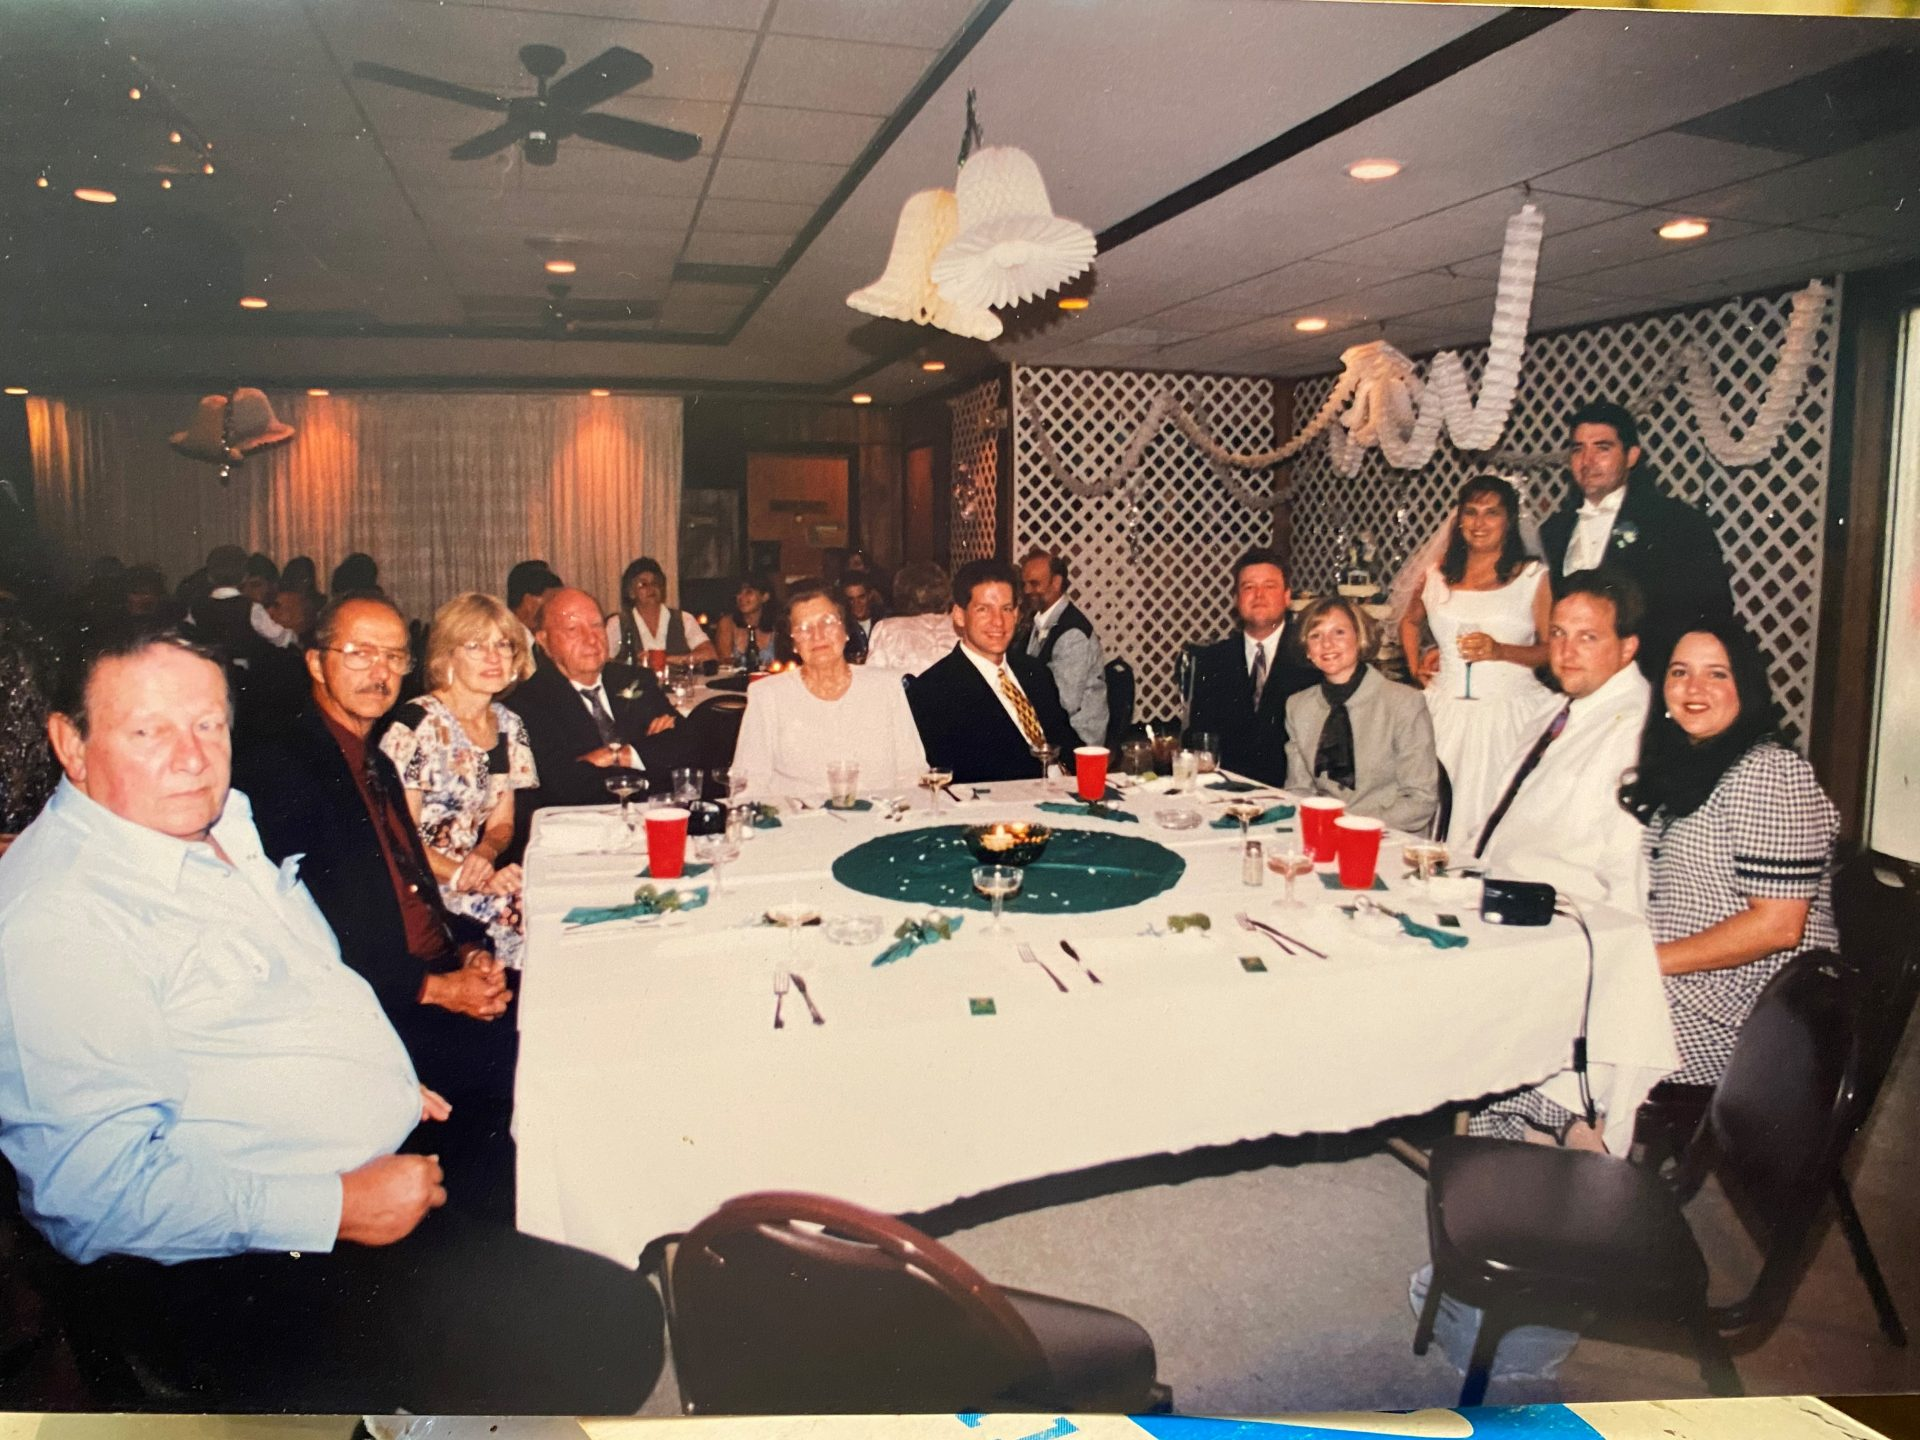 Michelle - Wedding:  Bobby Simpson, Wayne  and Mary Hamlin (Bobby's sister) , John and Margaret Simpson (Father and step mother), Paul Hamlin (nephew) , Mike Curry (nephew) , Michelle (niece) and James Duquette, Al (nephew) and Leslie Hamlin